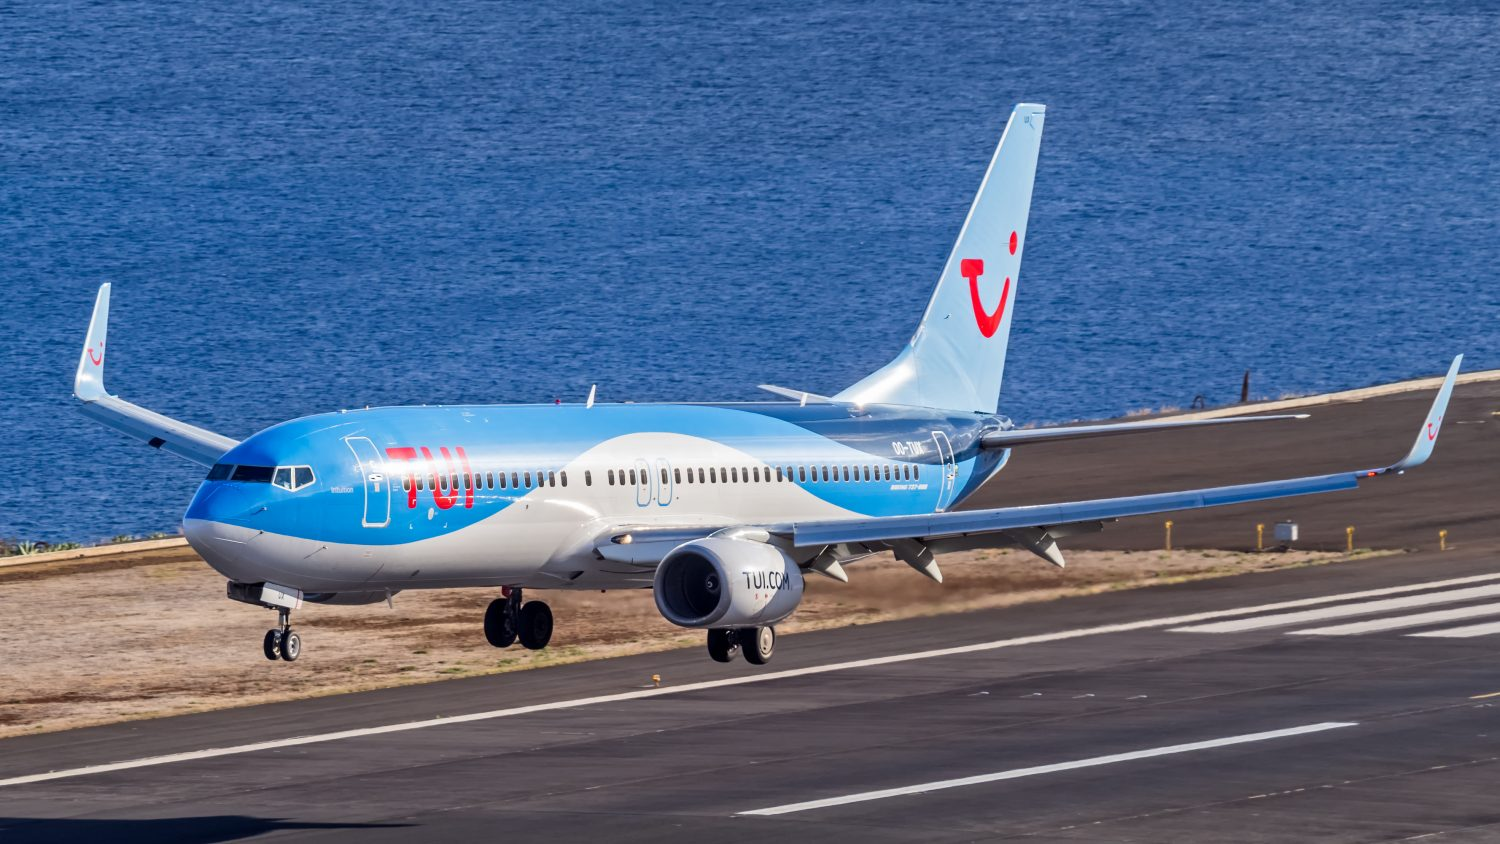 Boeing 737-800 TUI (photo from cafe)